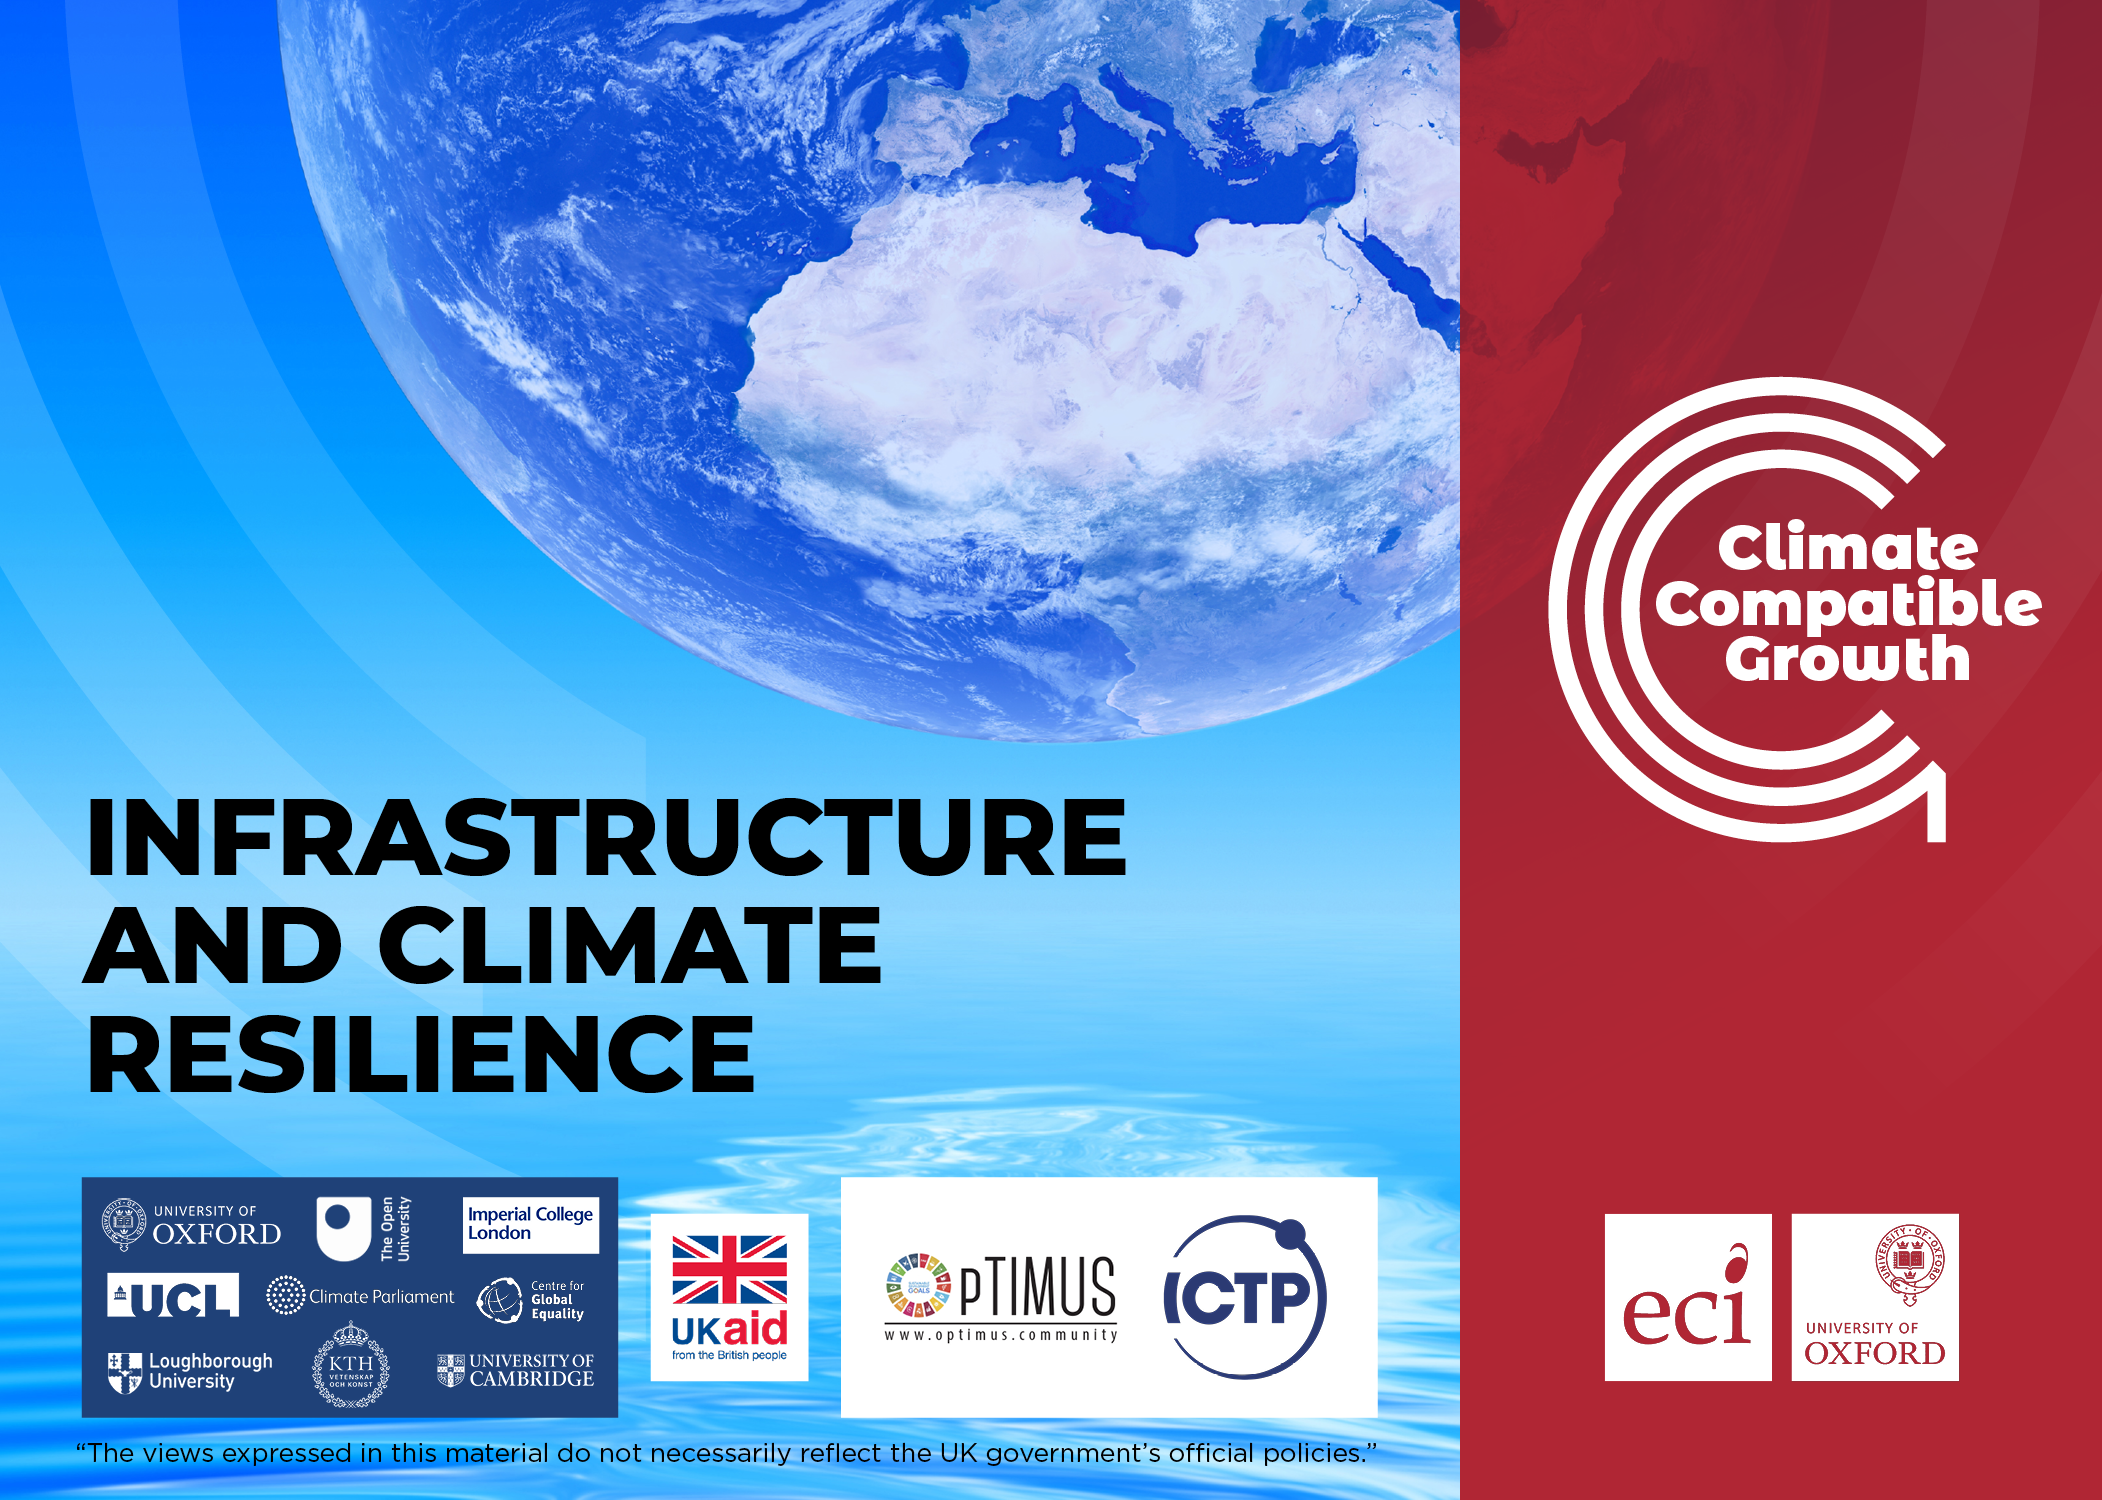 Infrastructure and Climate Resilience